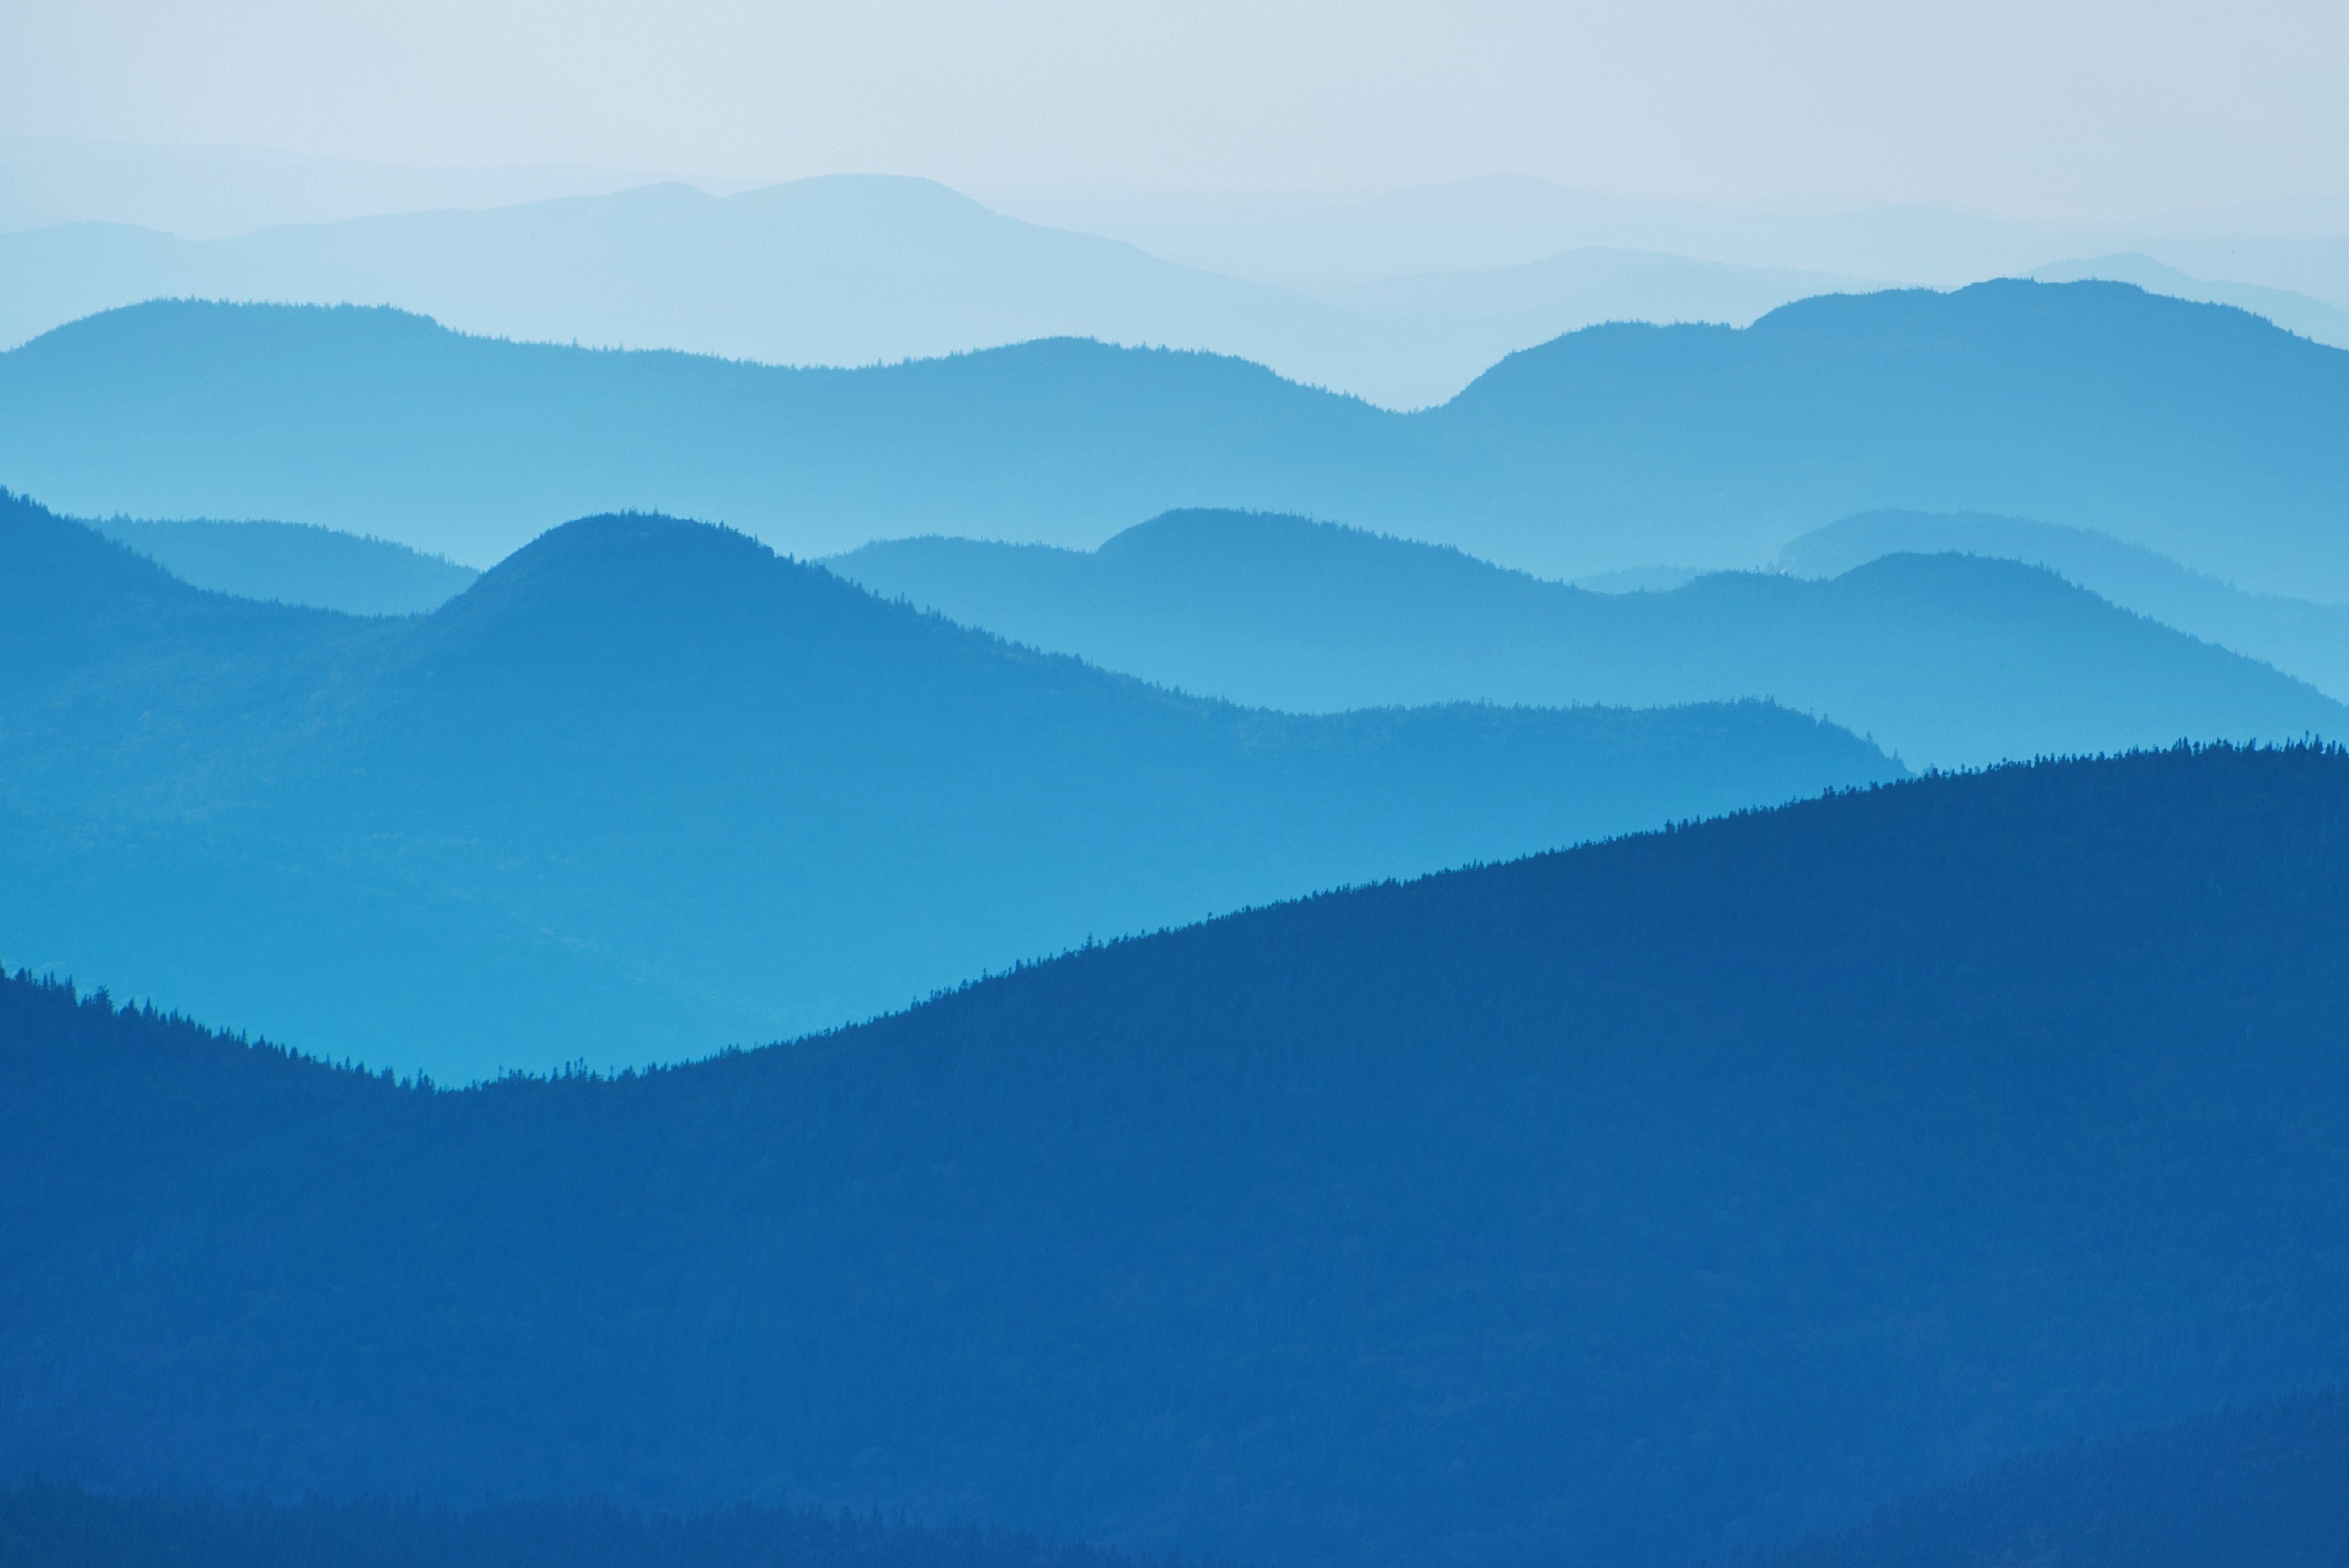 Blue-hued mountain ridges in a thick fog